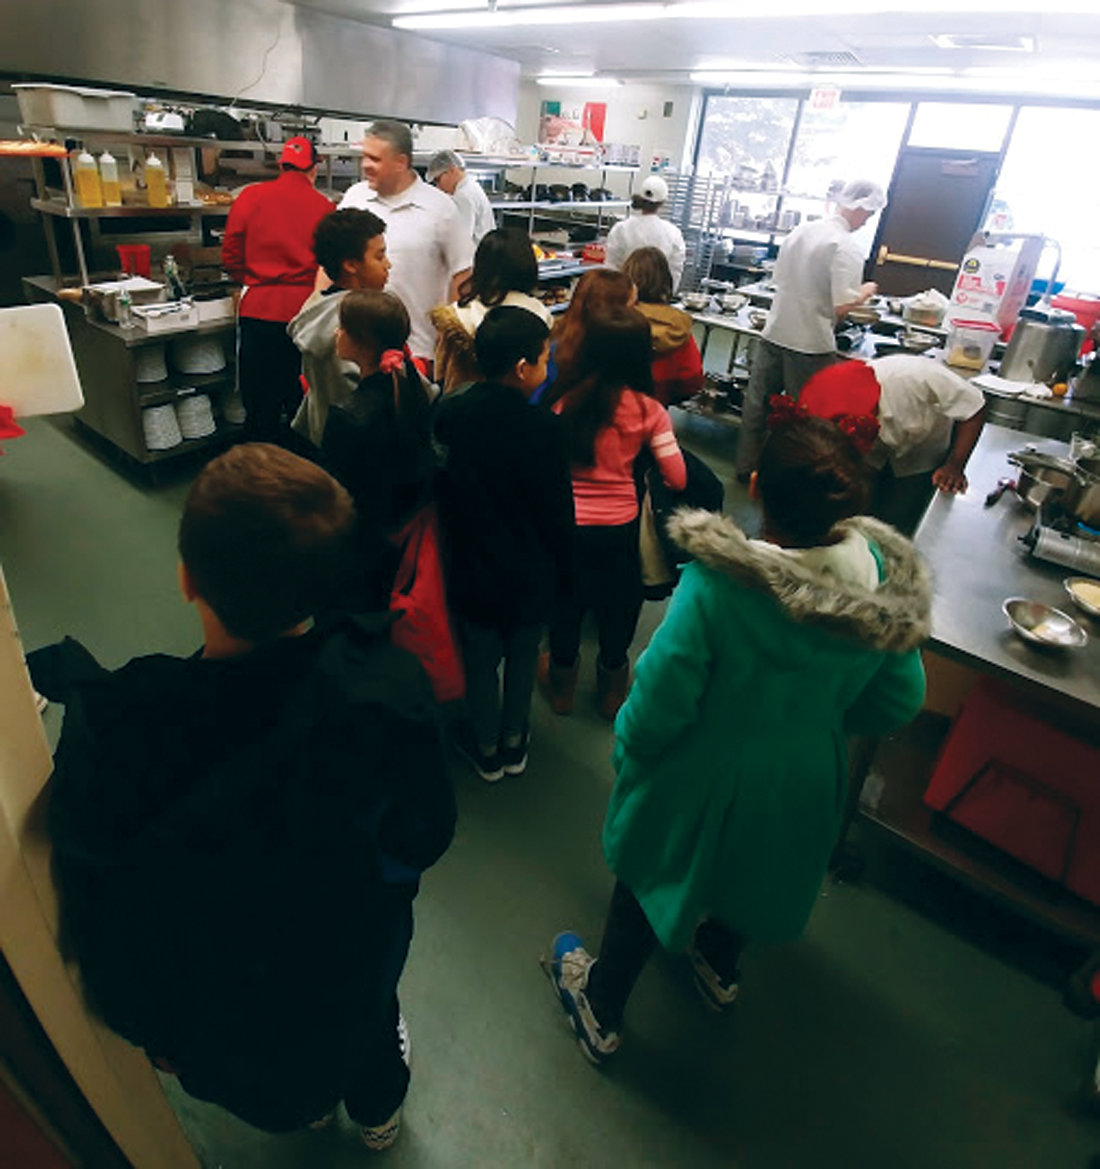 A REAL RESTAURANT: Elementary school students toured the Culinary Arts pathways kitchen area, where the high school students were busily preparing a delicious restaurant-quality lunch, as part of the Hour of Code event.